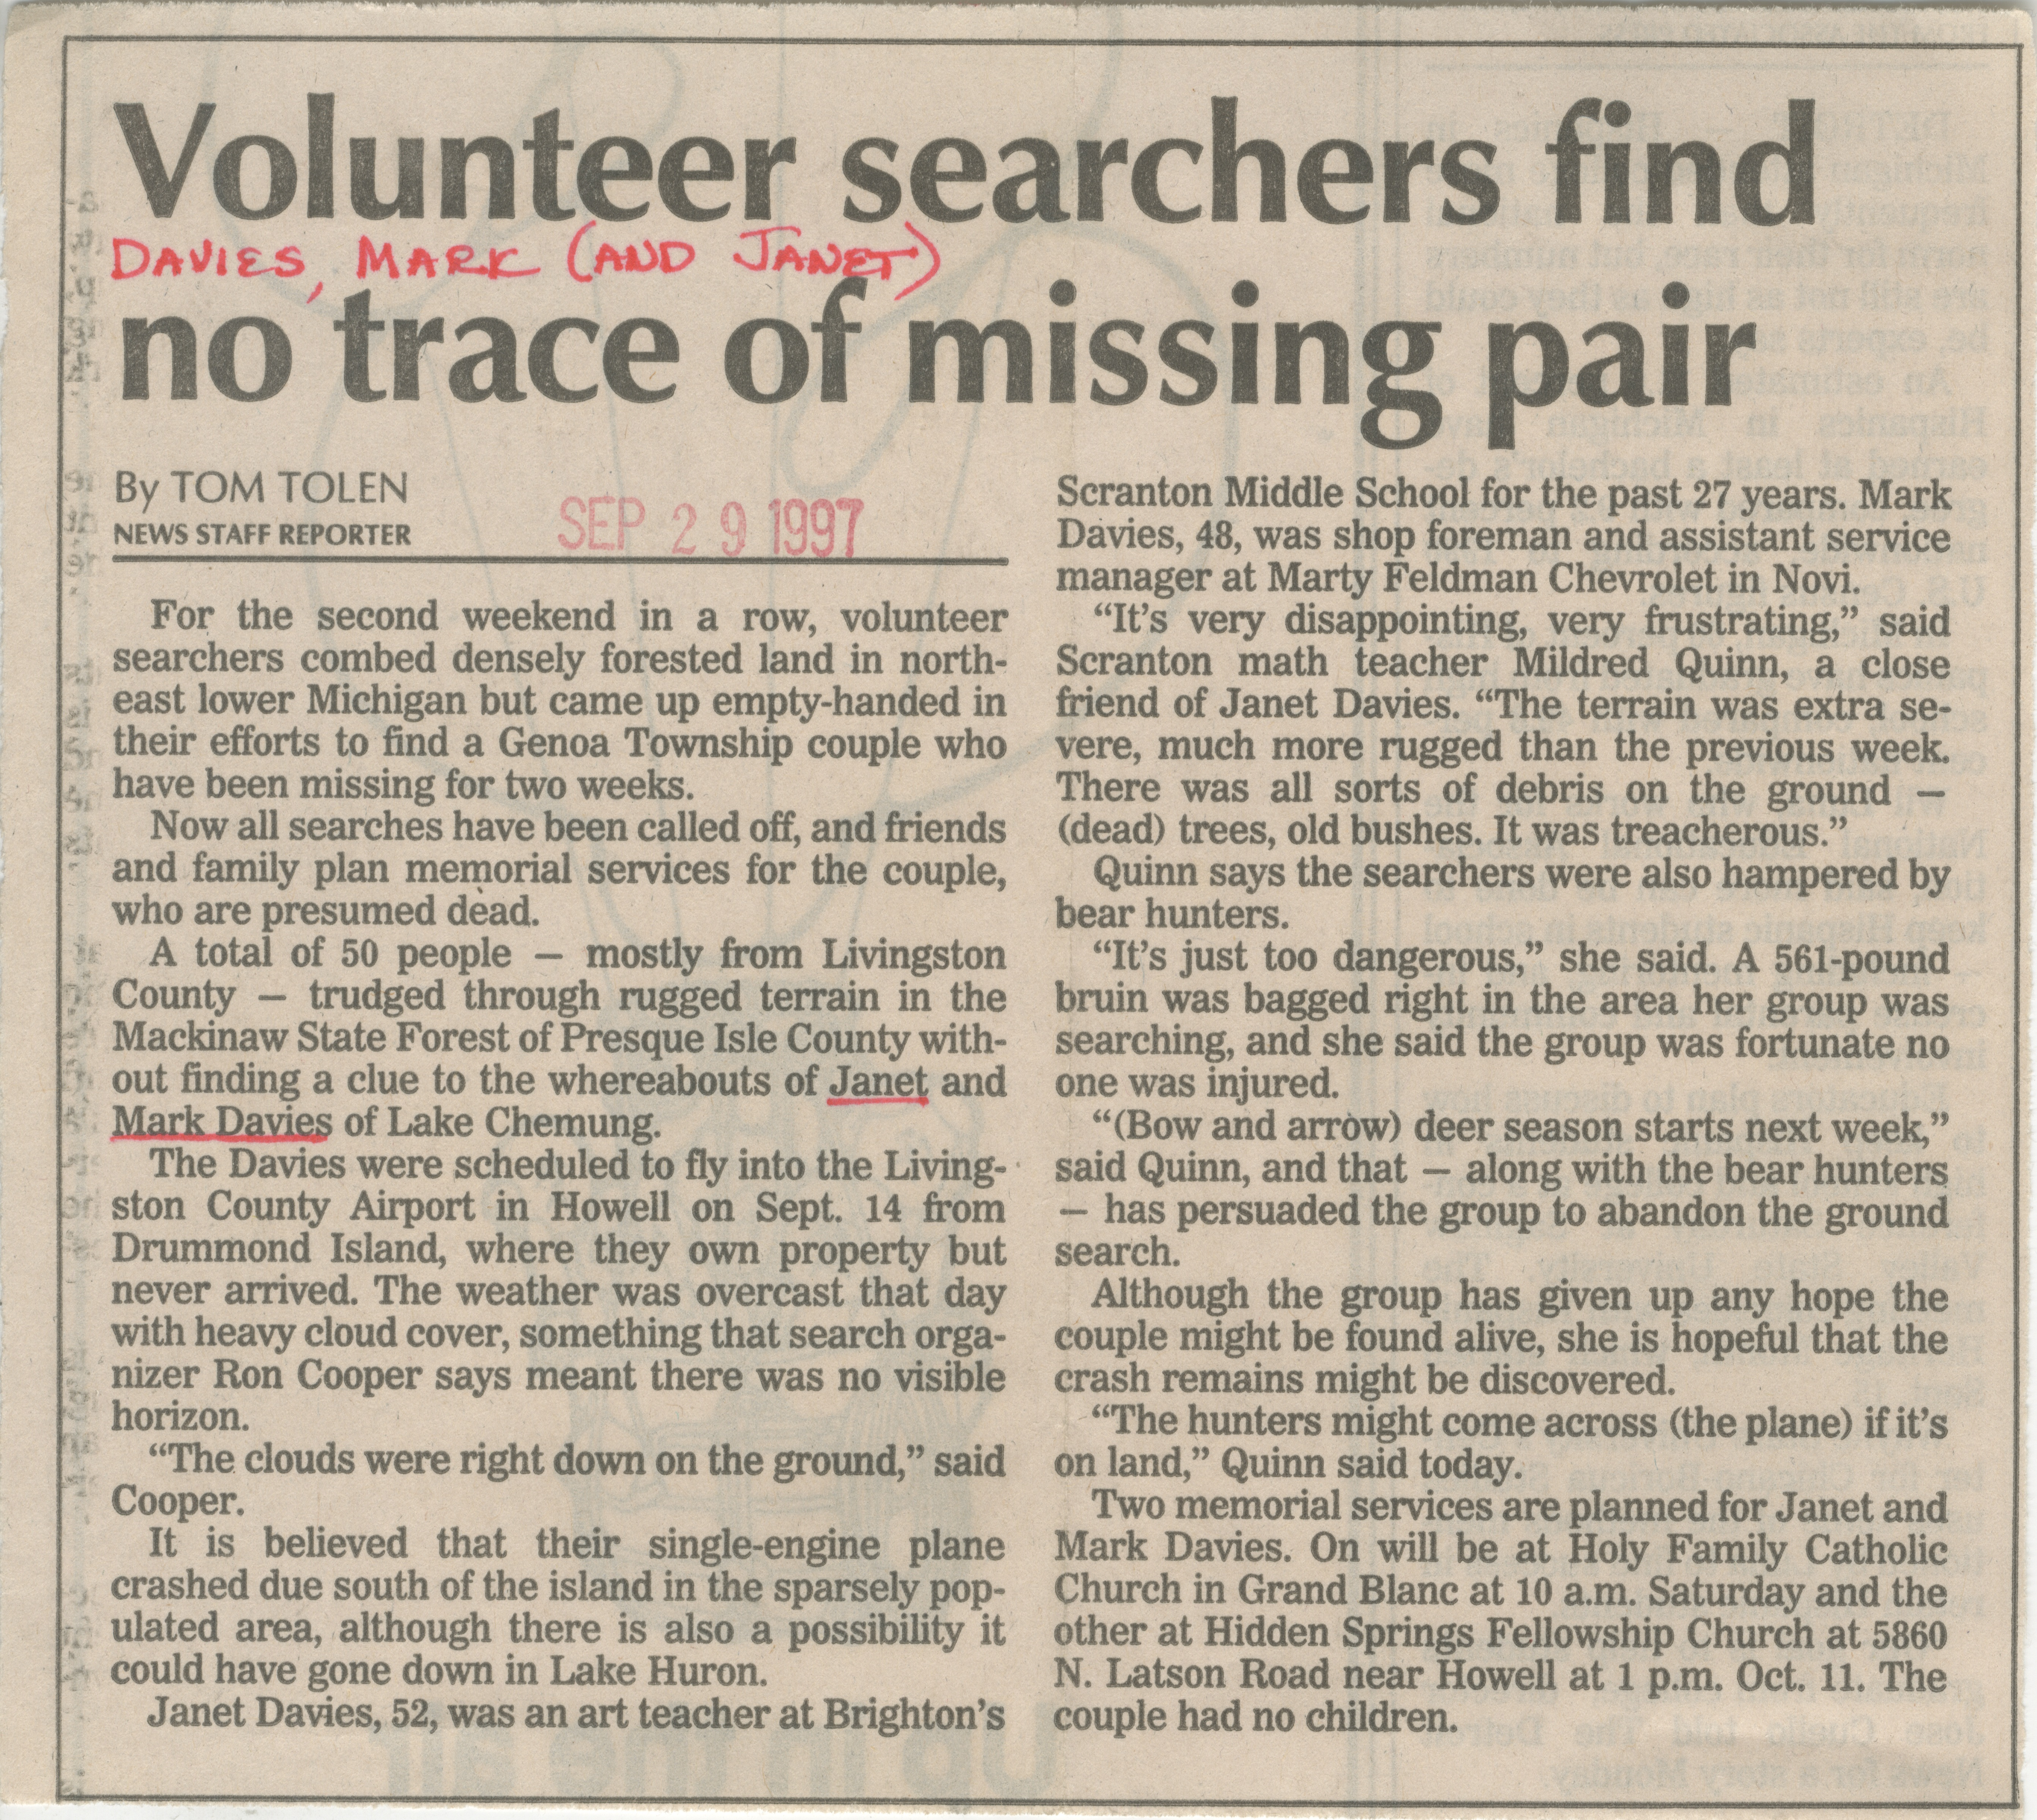 Volunteer Searchers Find No Trace Of Missing Pair  image